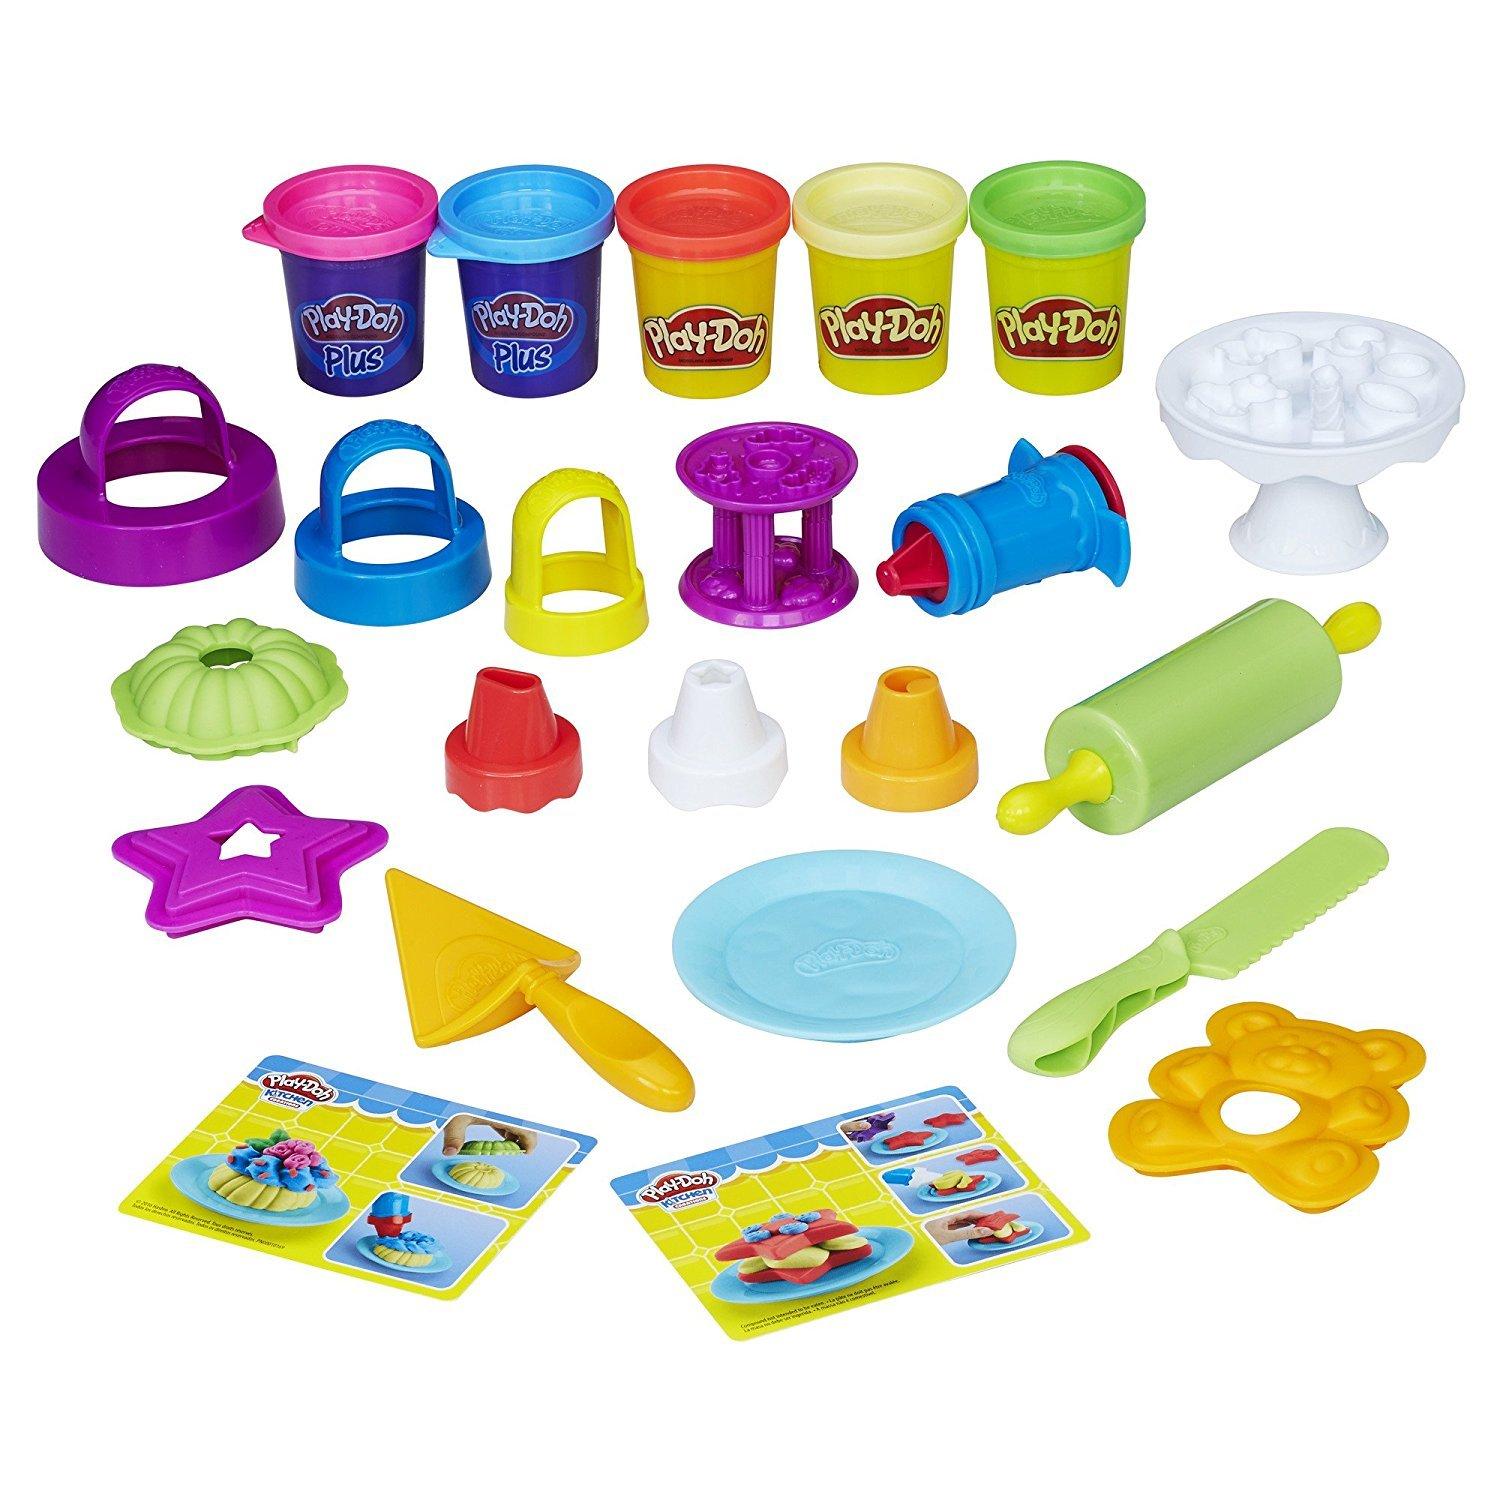 Play Doh: Kitchen Creations - Frost N Fun Cakes image